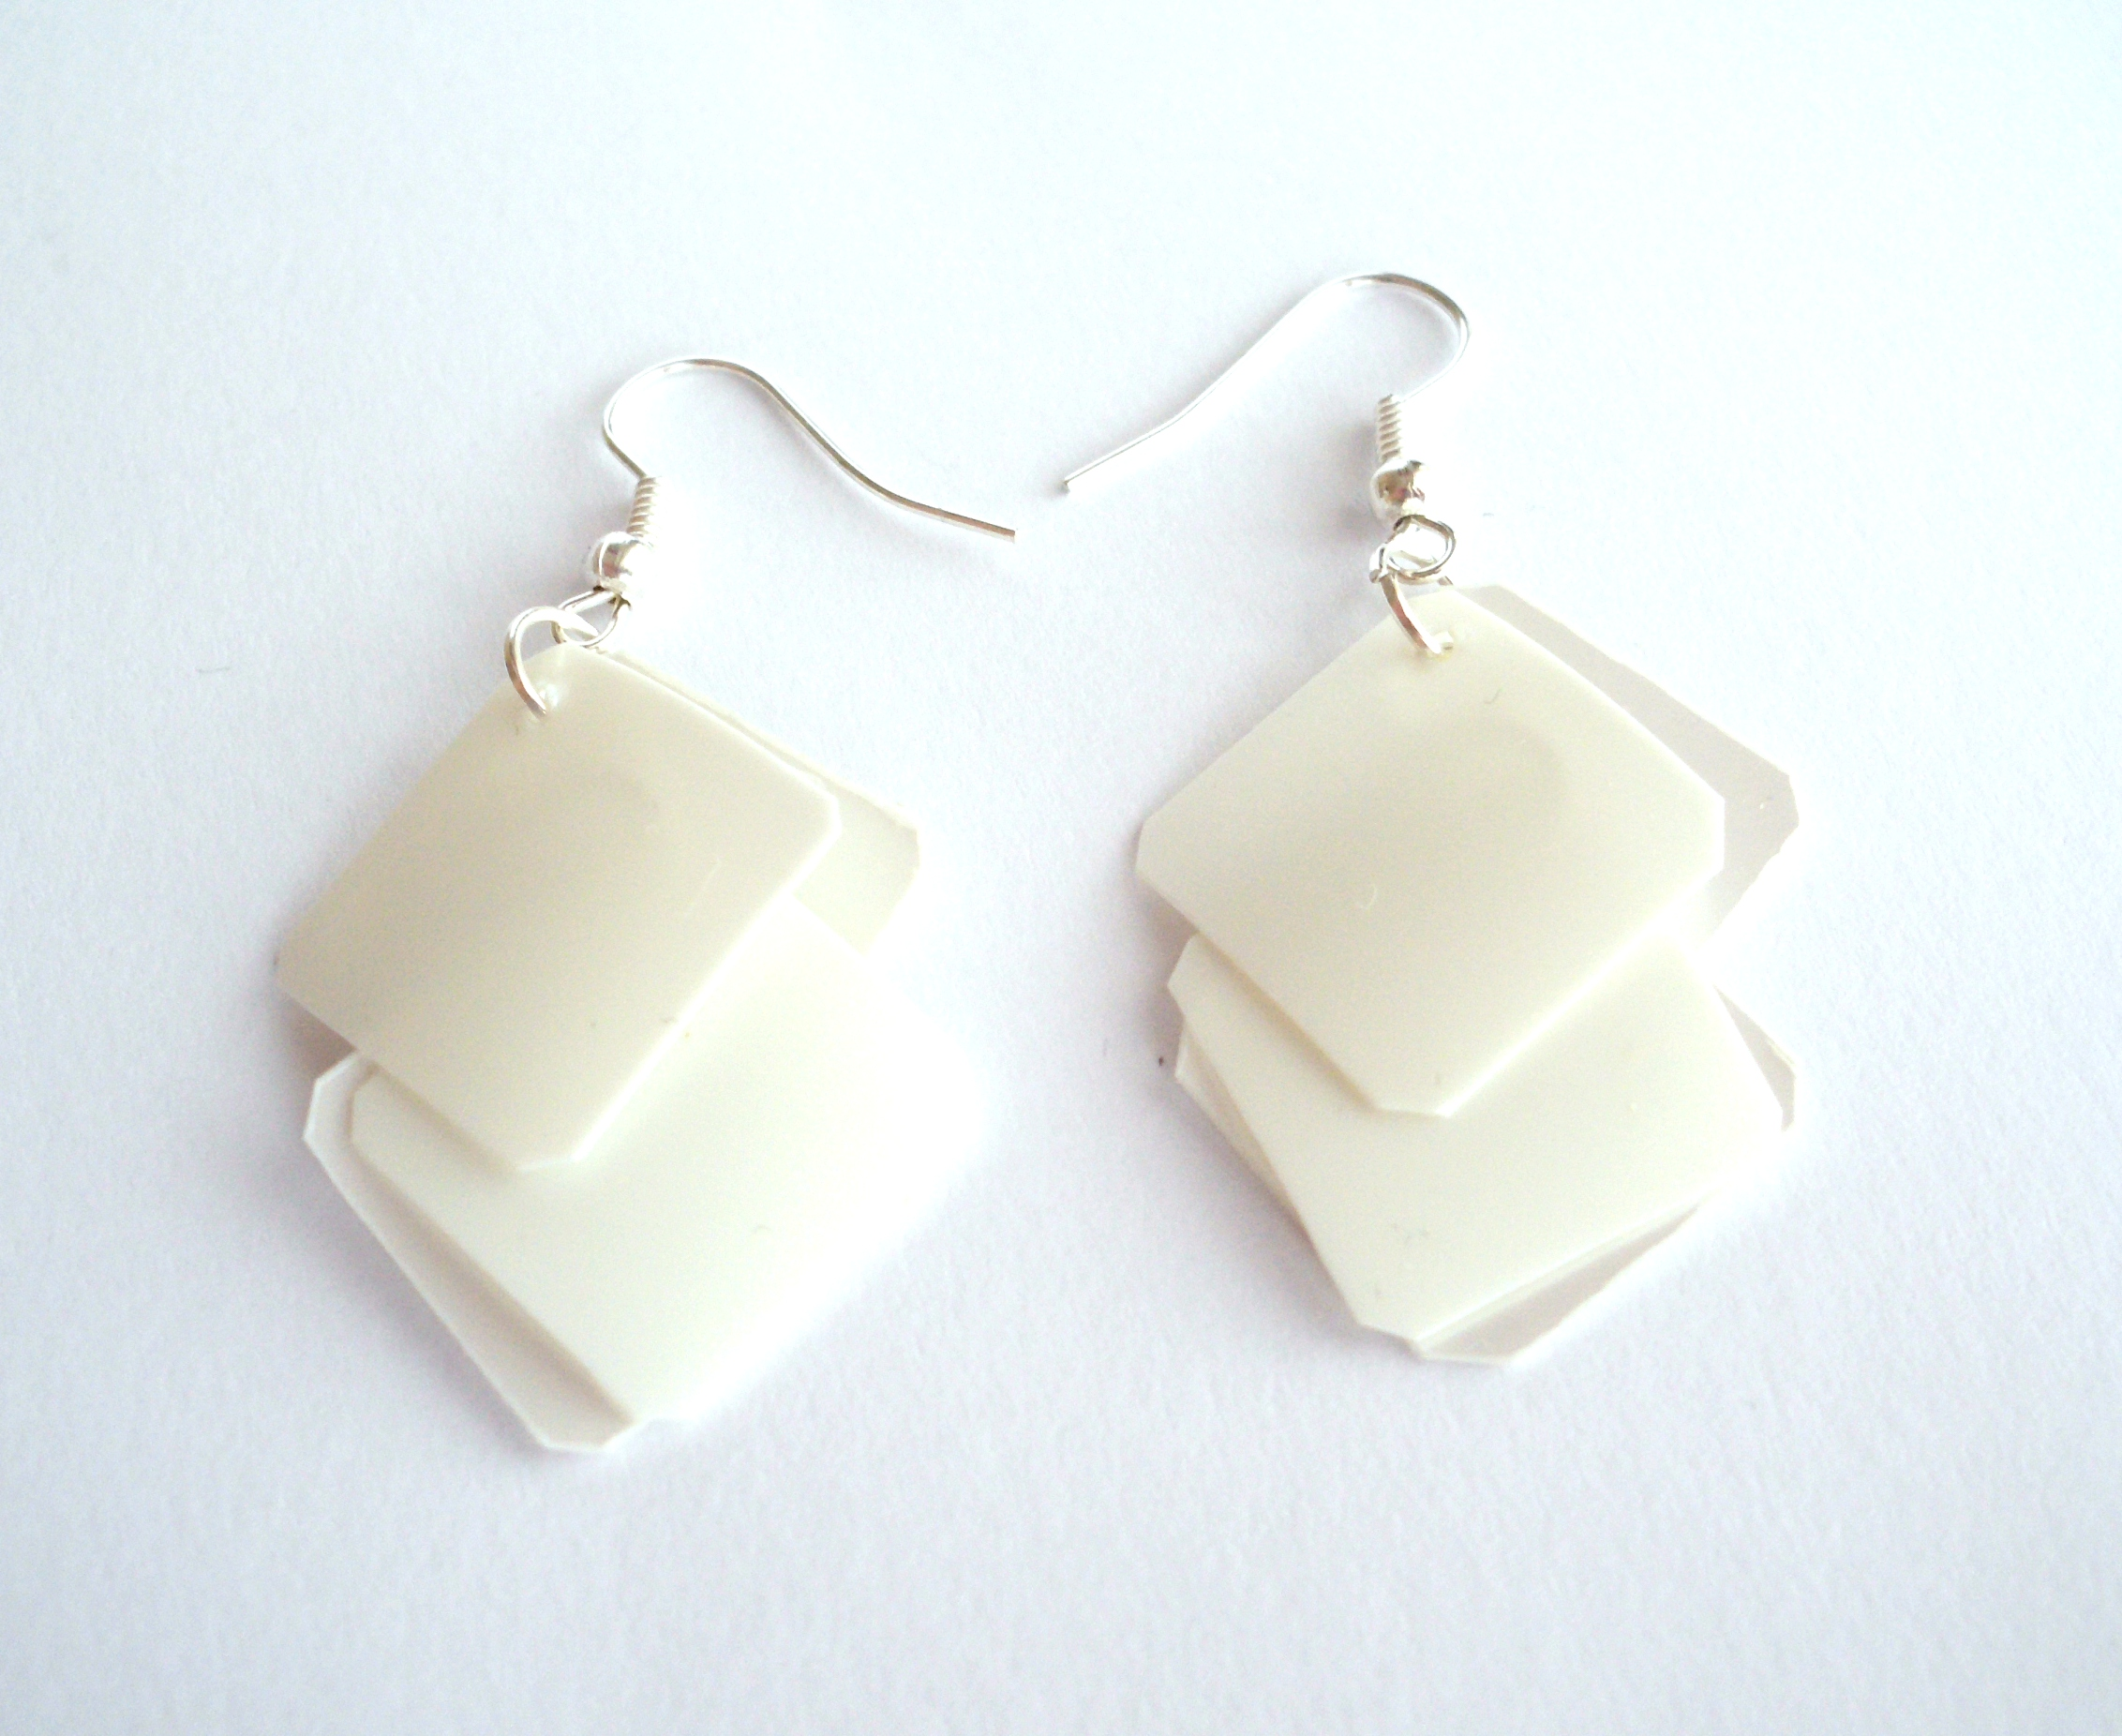 White Earrings Made Of Recycled Plastic Bottle Geometric Squares Eco Friendly Upcycled Jewelry Modern Minimalist